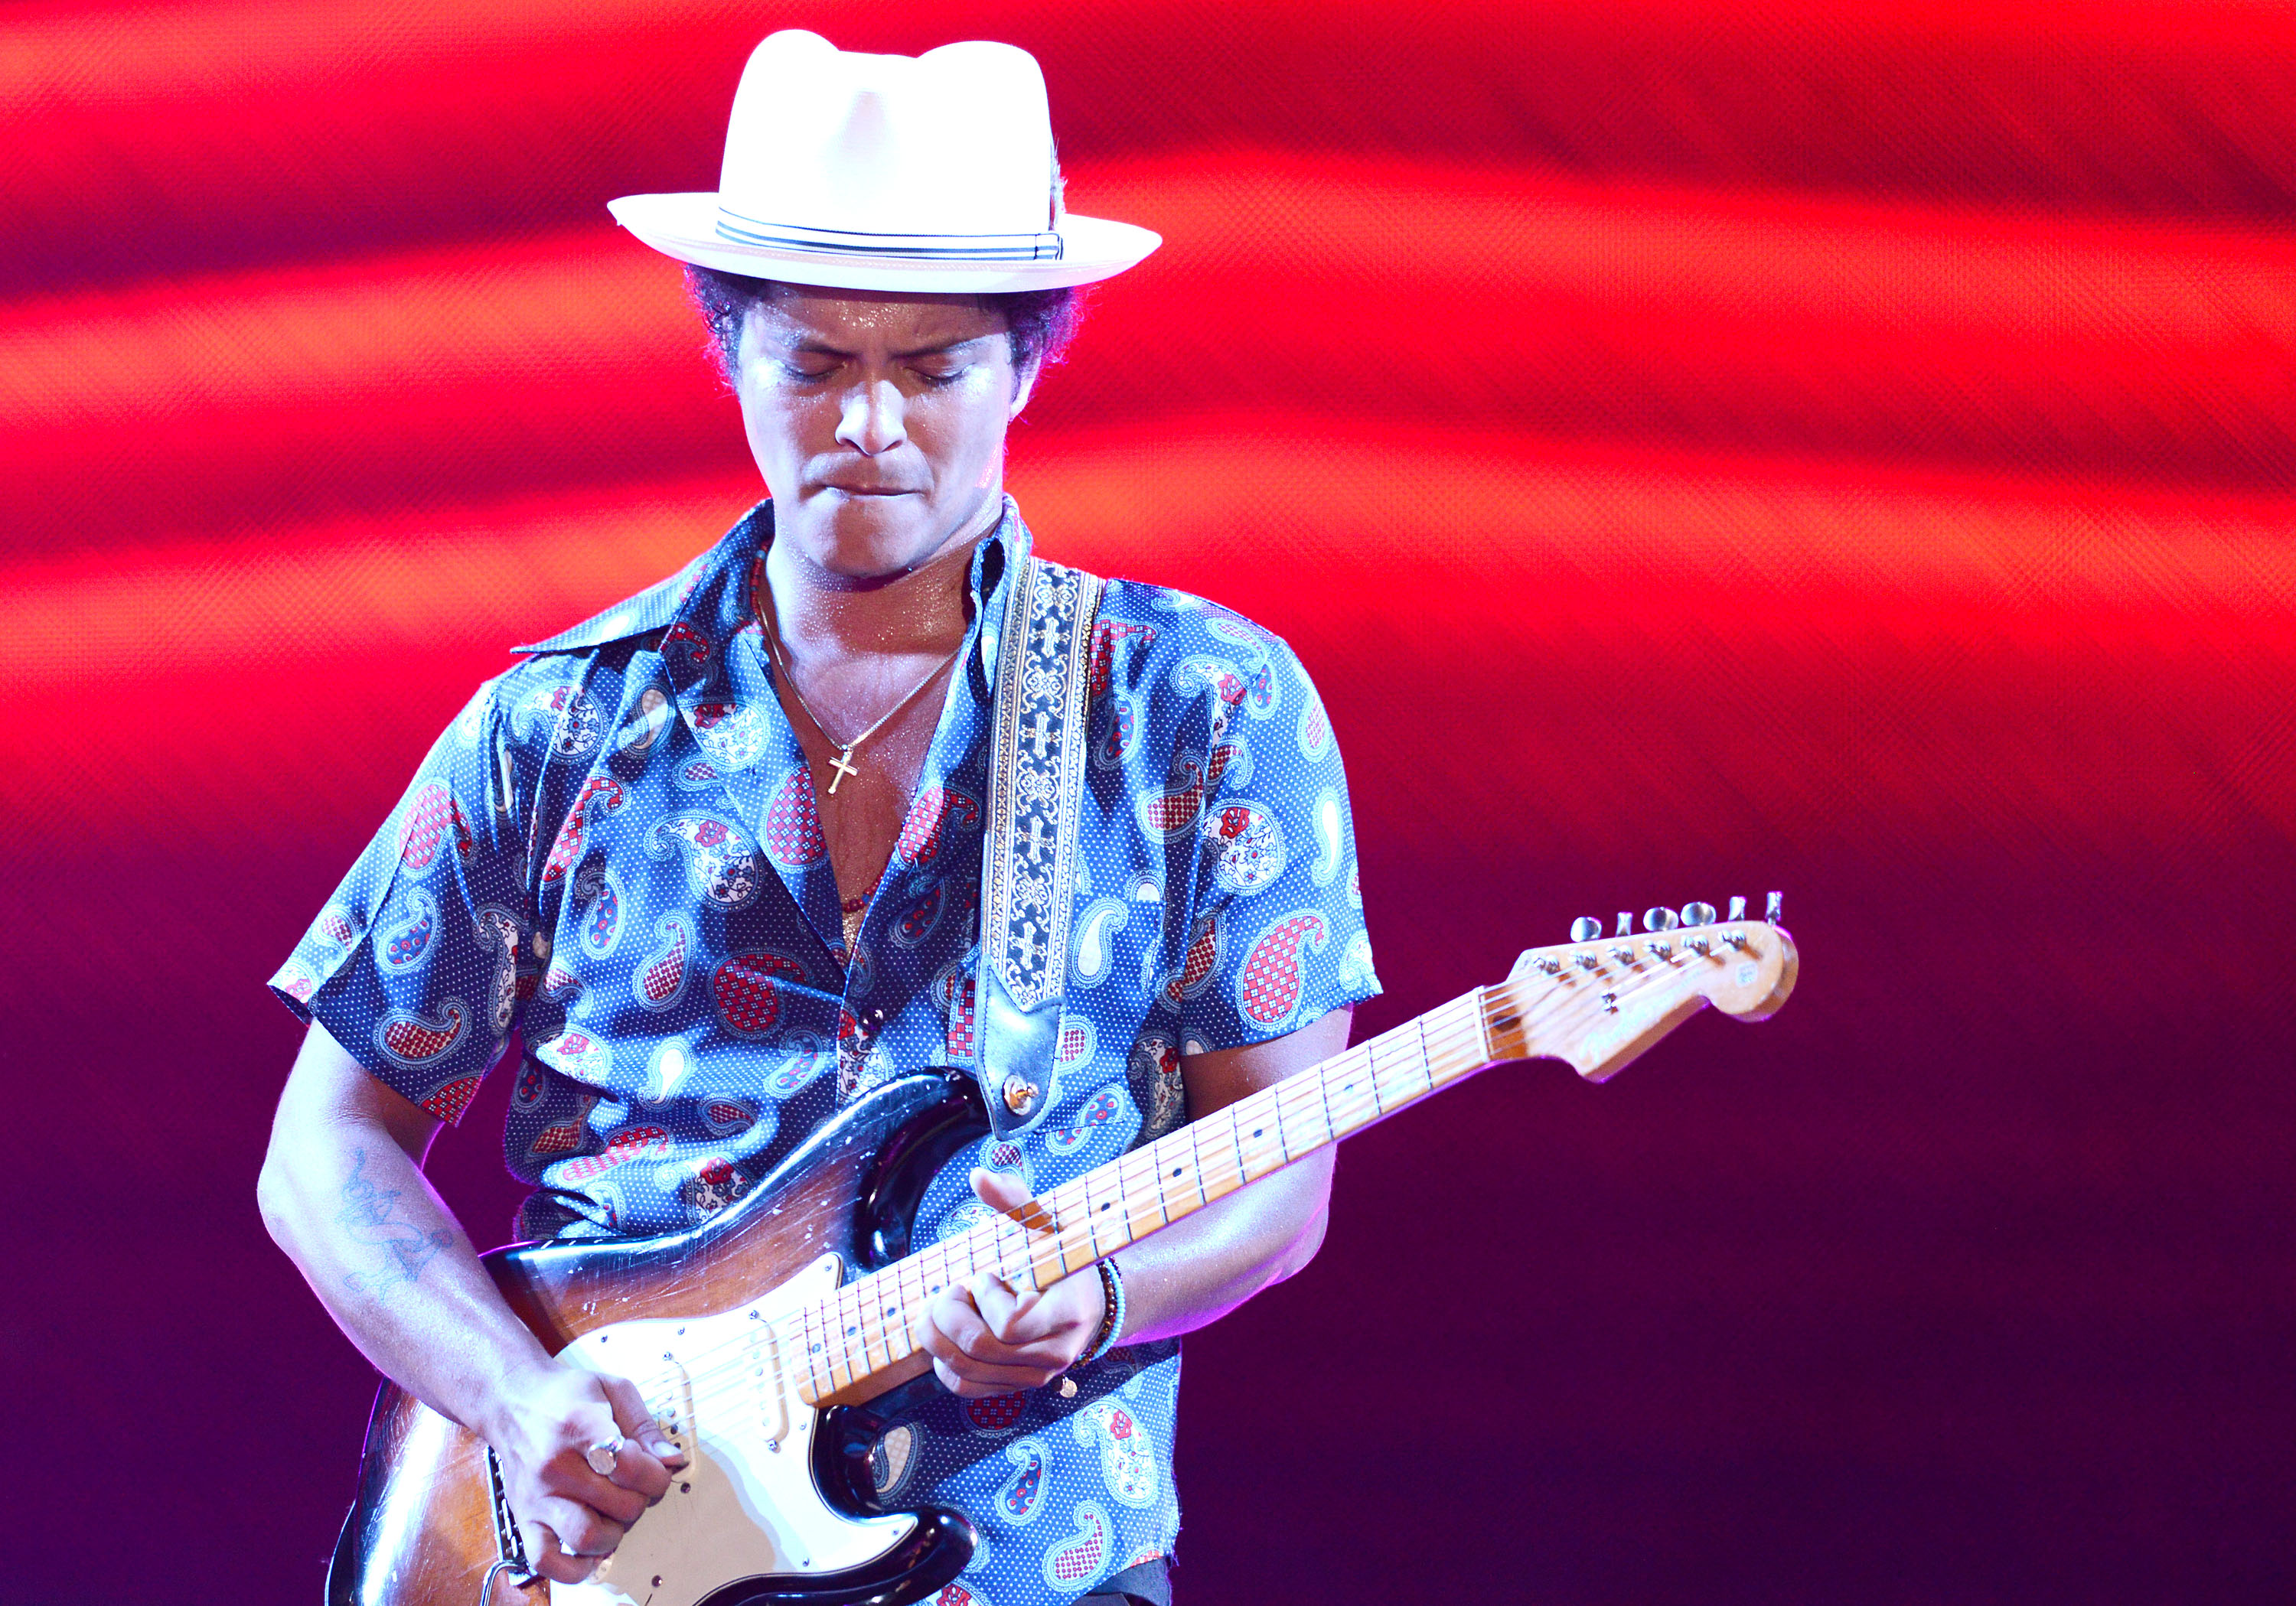 The UCSF Concert For Kids Featuring Bruno Mars